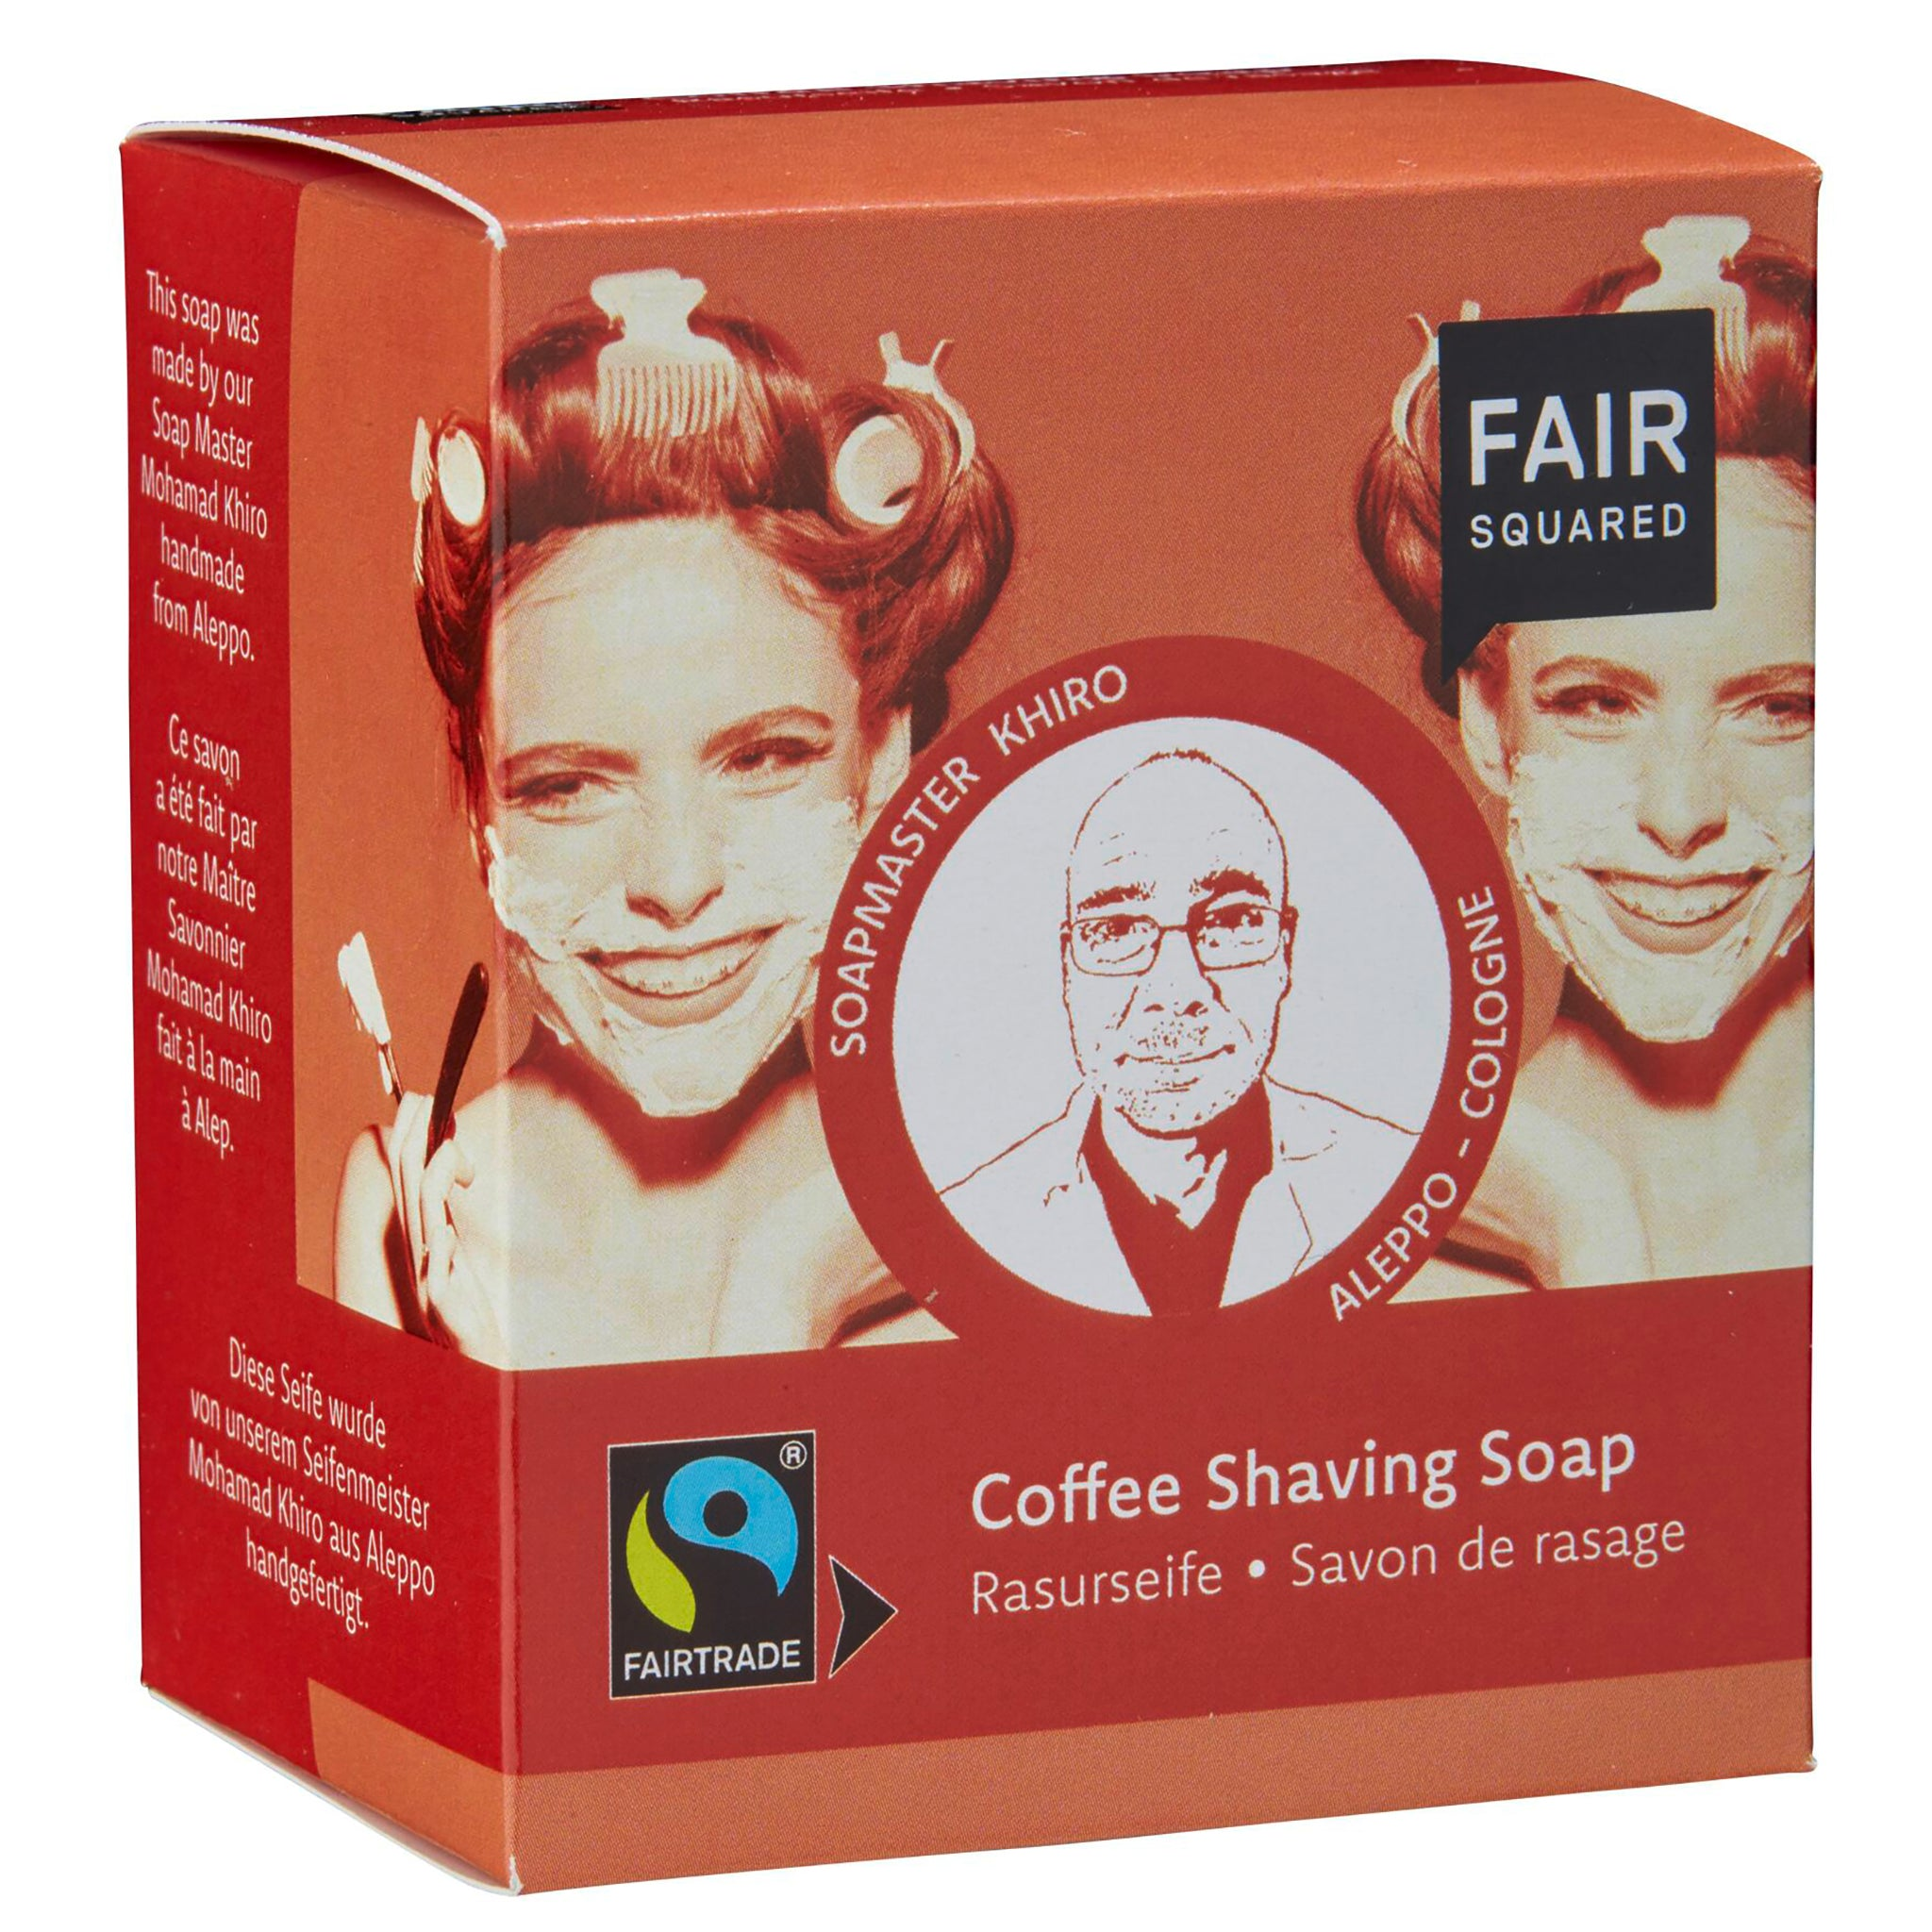 Coffee Shaving Soap with Cotton Soap Bag